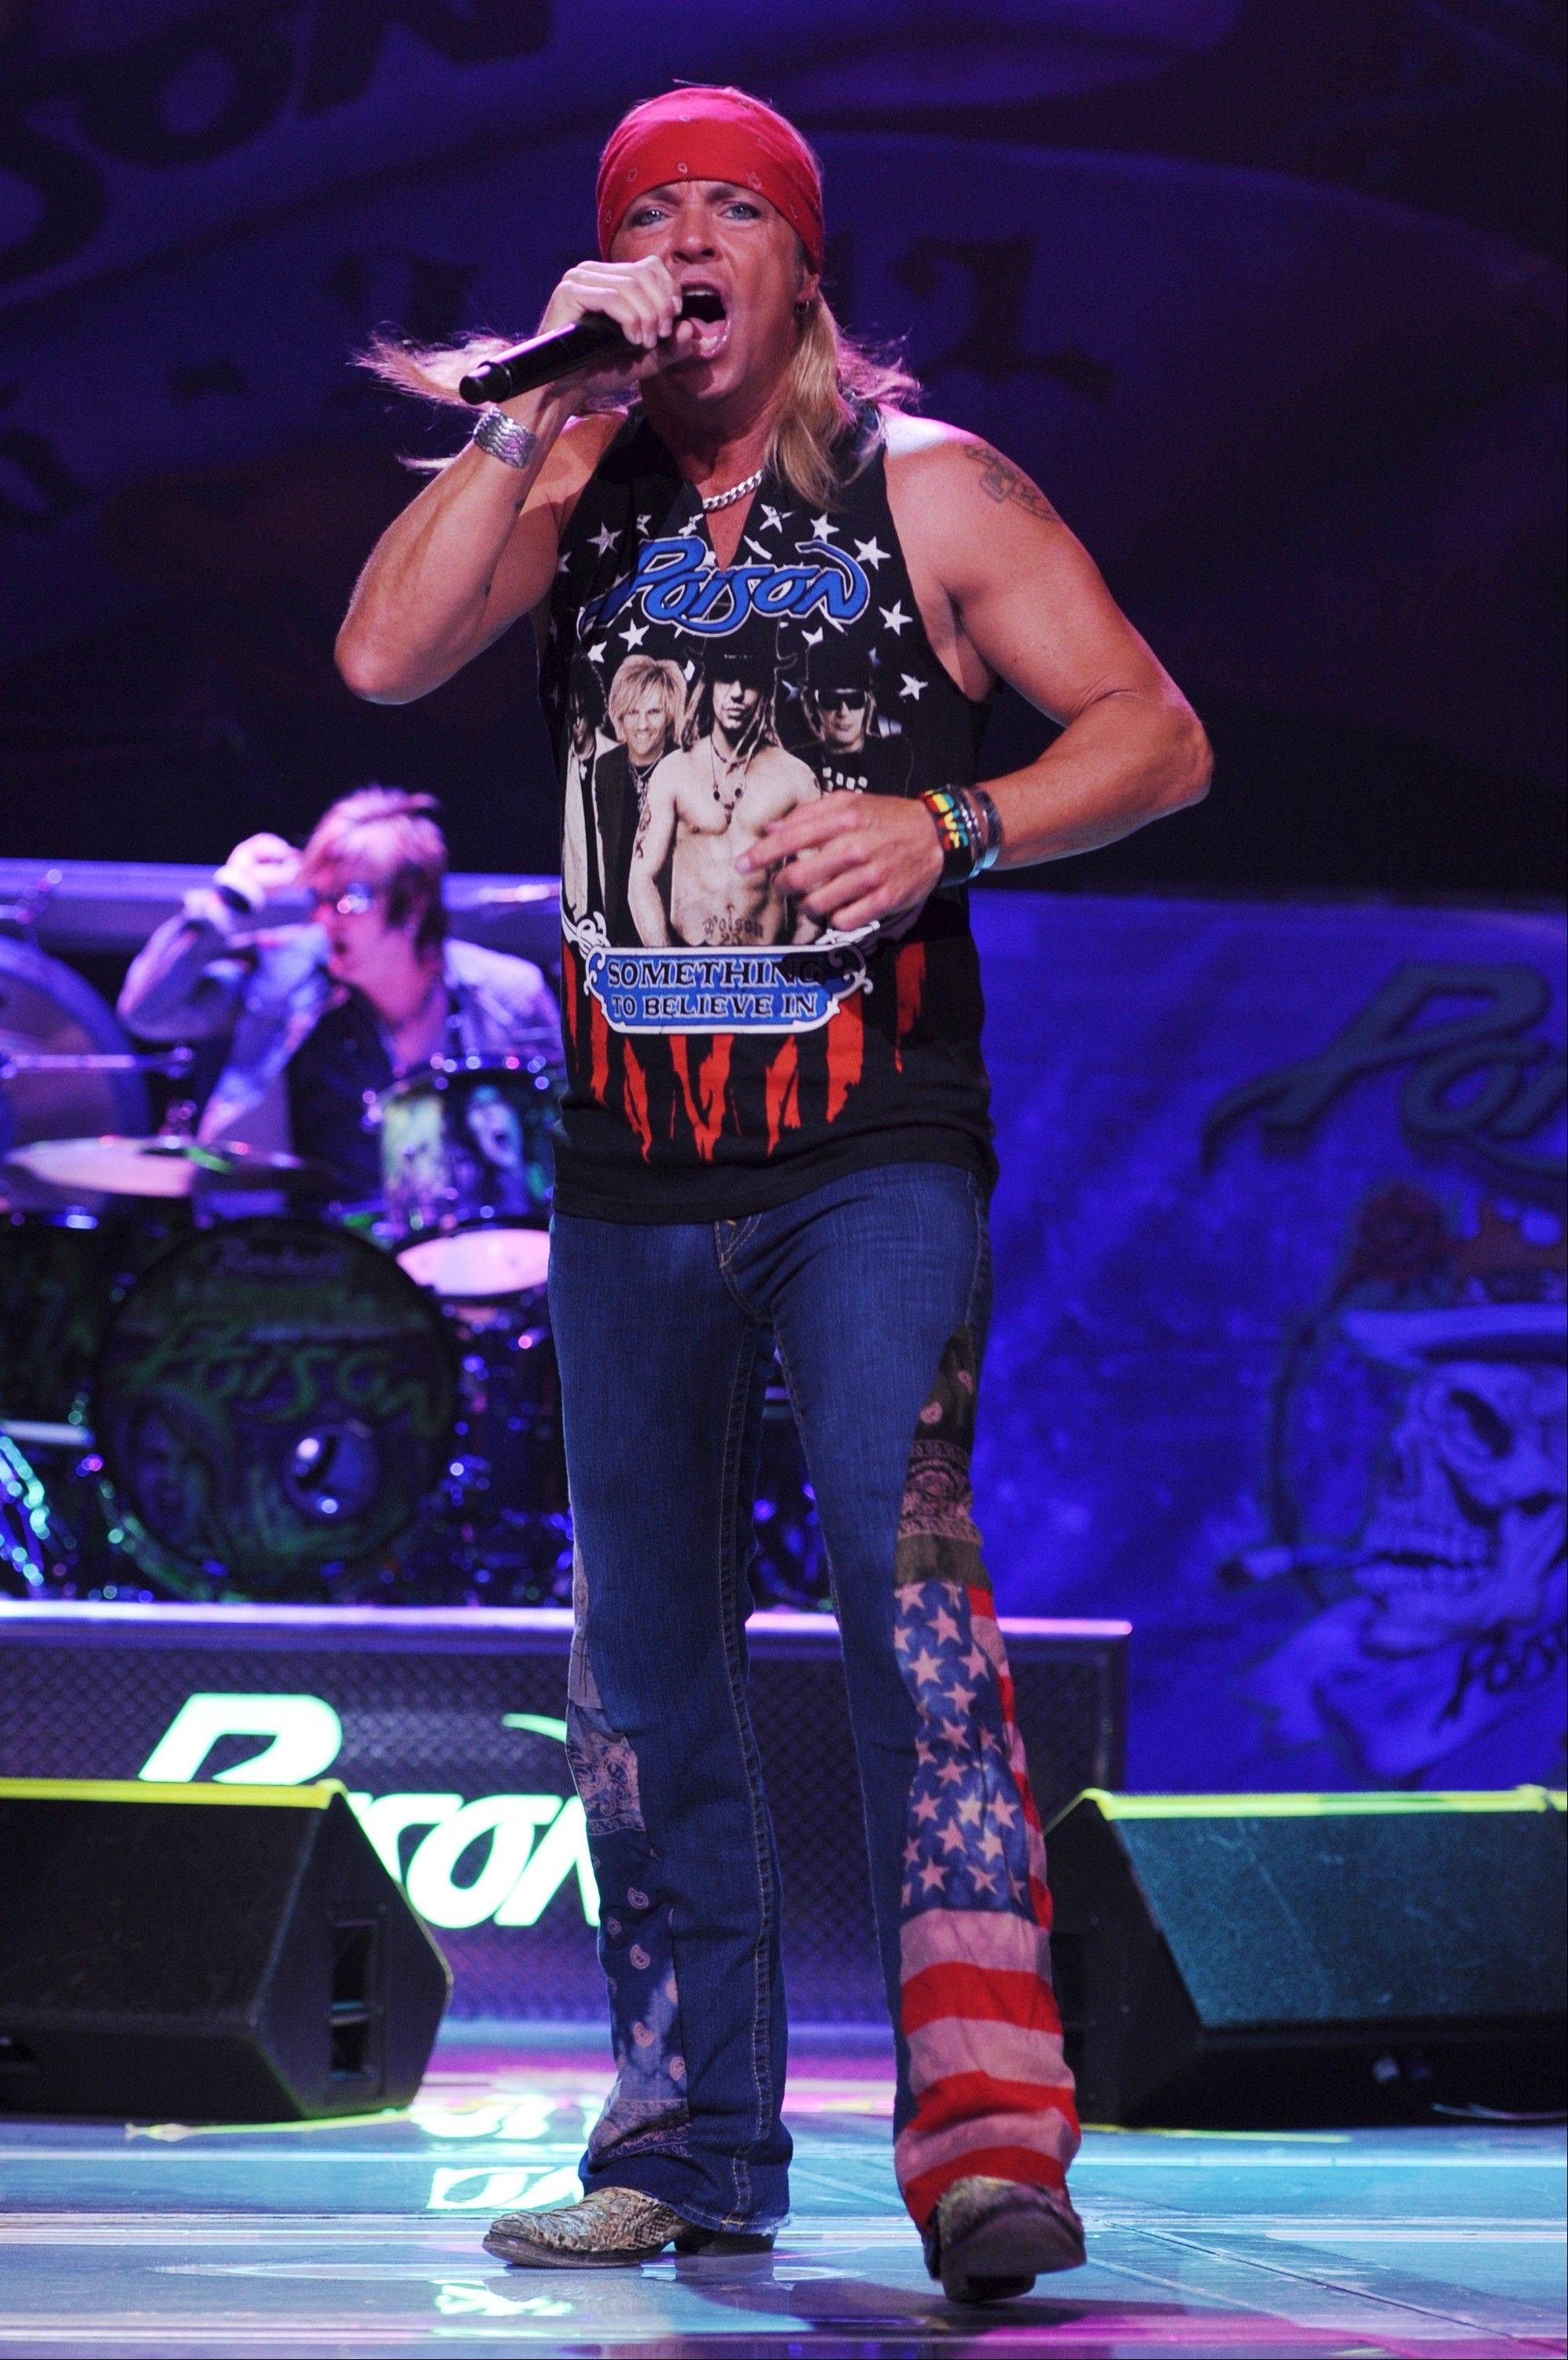 Bret Michaels, former frontman for popular hair-metal band Poison, will take the stage at Frontier Days in Arlington Heights on Saturday.